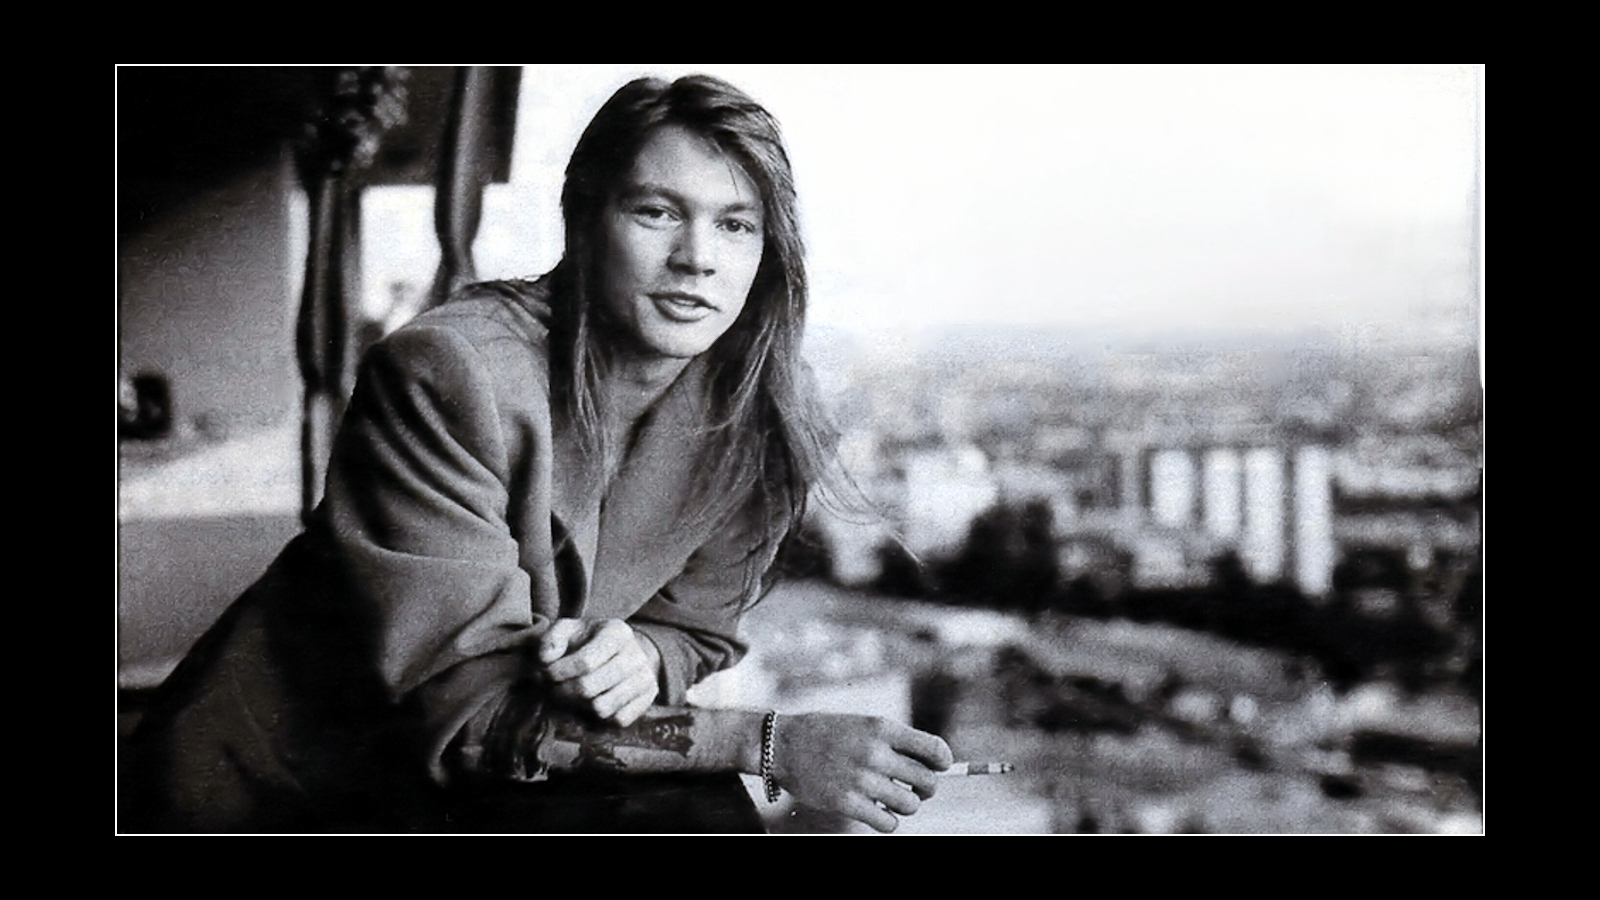 Axl Rose in the 80s 壁纸